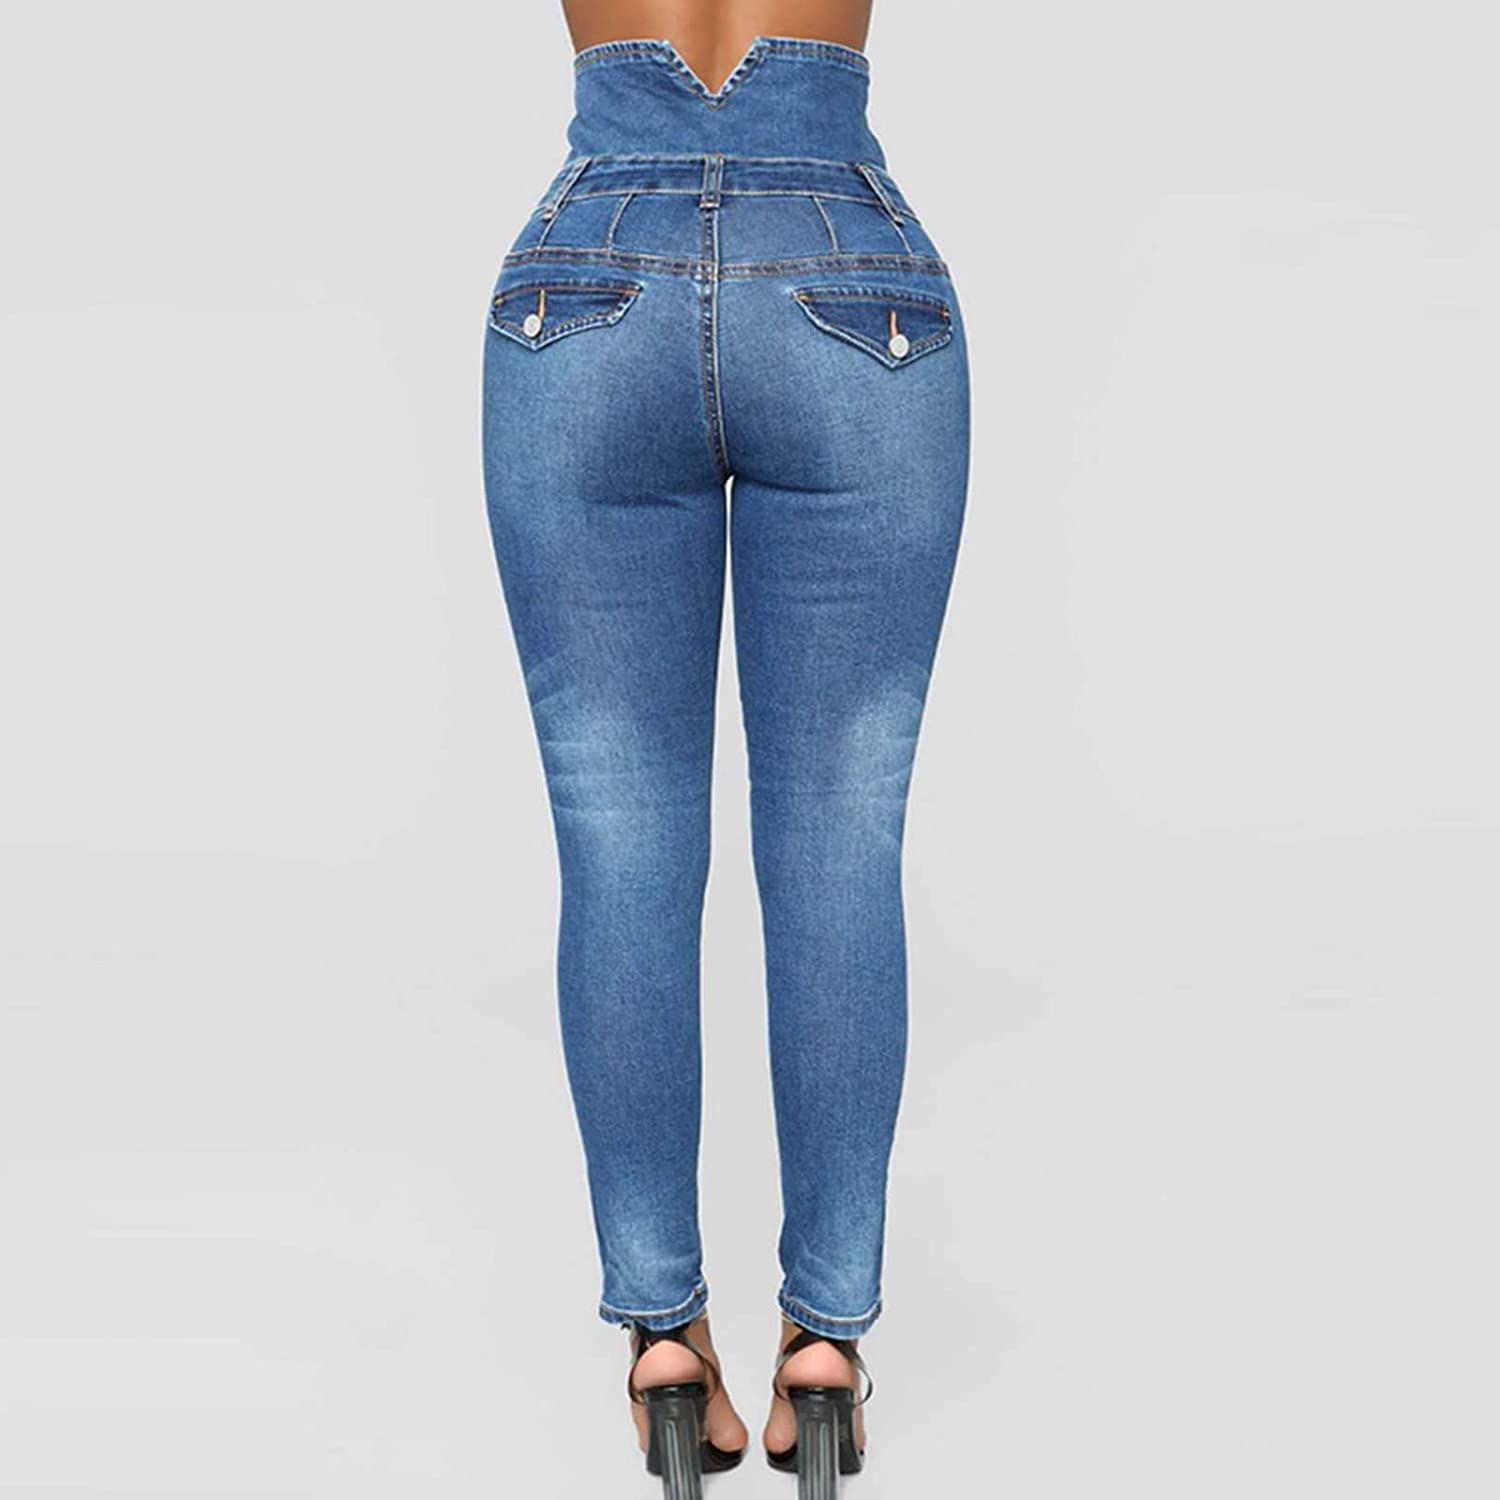 Womens Mom Jeans High Waisted Button Fly Ripped Skinny Jeans Butt Lift Denim Pants Slim Fit Distressed Jeans Pants